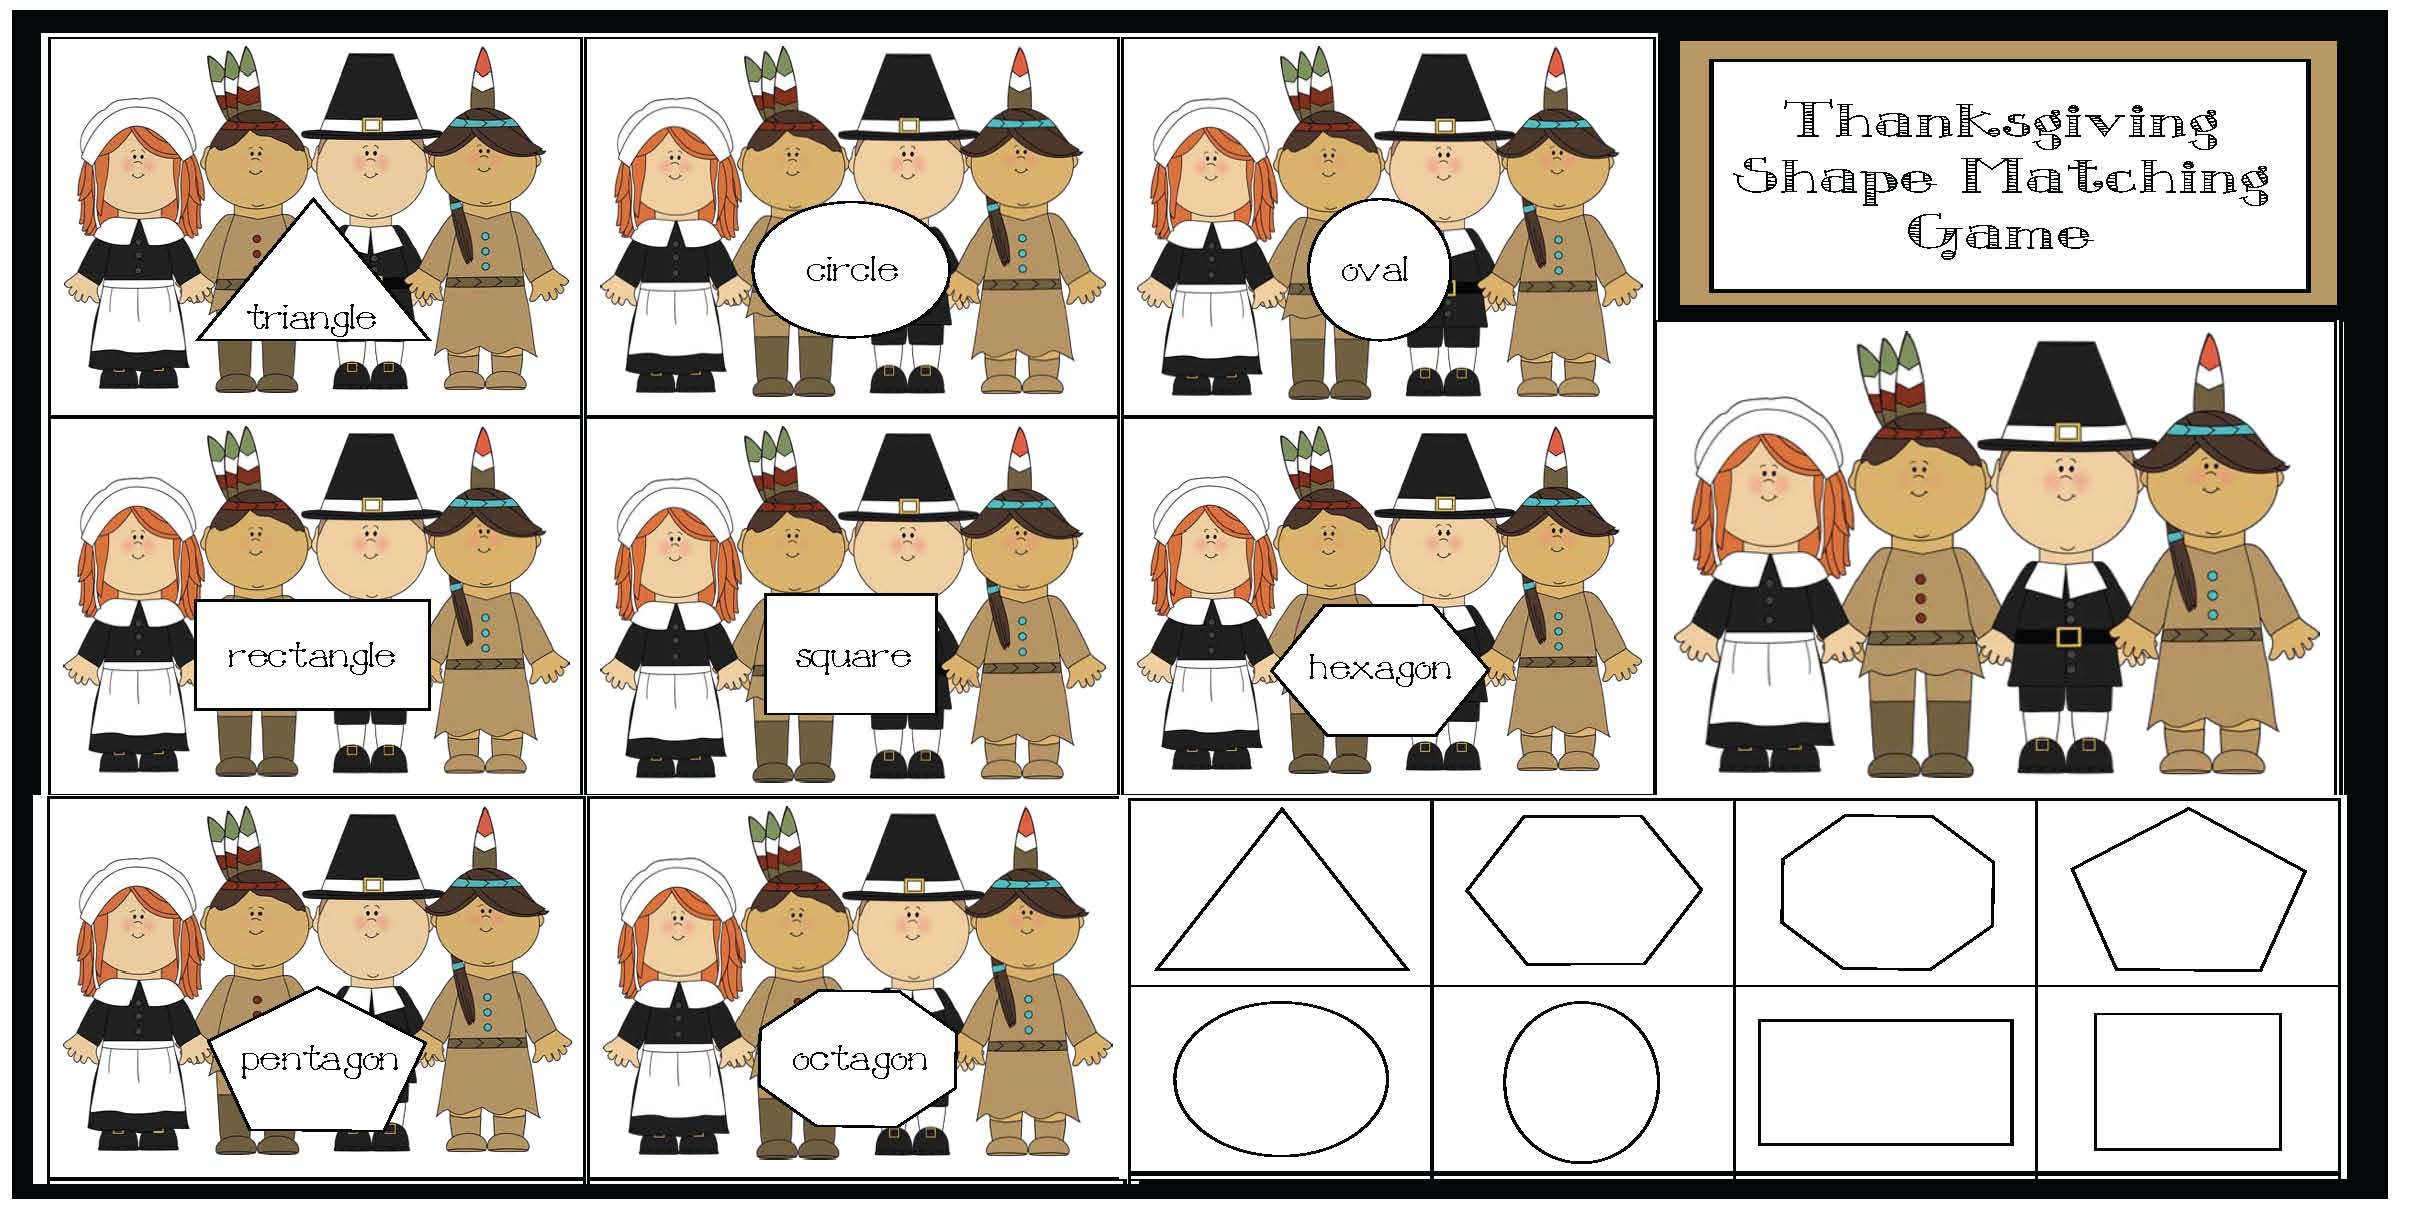 pilgrim activities, thanksgiving activities, pilgrim 10 frames, 10 frames templates, thanksgiving 10 frames, addition and subtraction centers, math centers for thanksgiving, math activities for thanksgiving, november math games, shape games, math games, shape activities, common core thanksgiving, common core pilgrims, greater and less than activities, free 10 frame templates, pilgrim shape activities